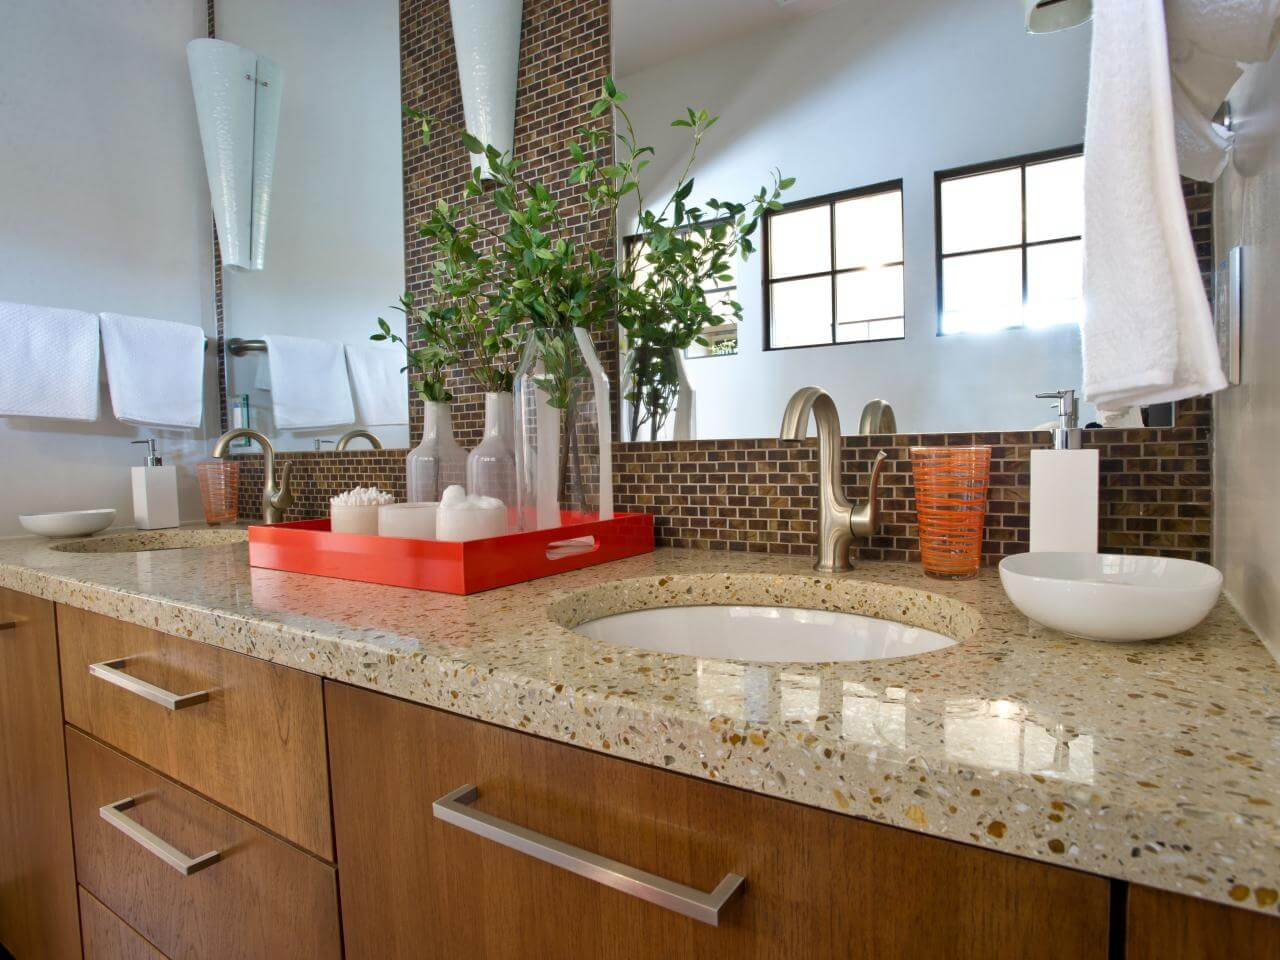 No kitchen countertop is complete without granite